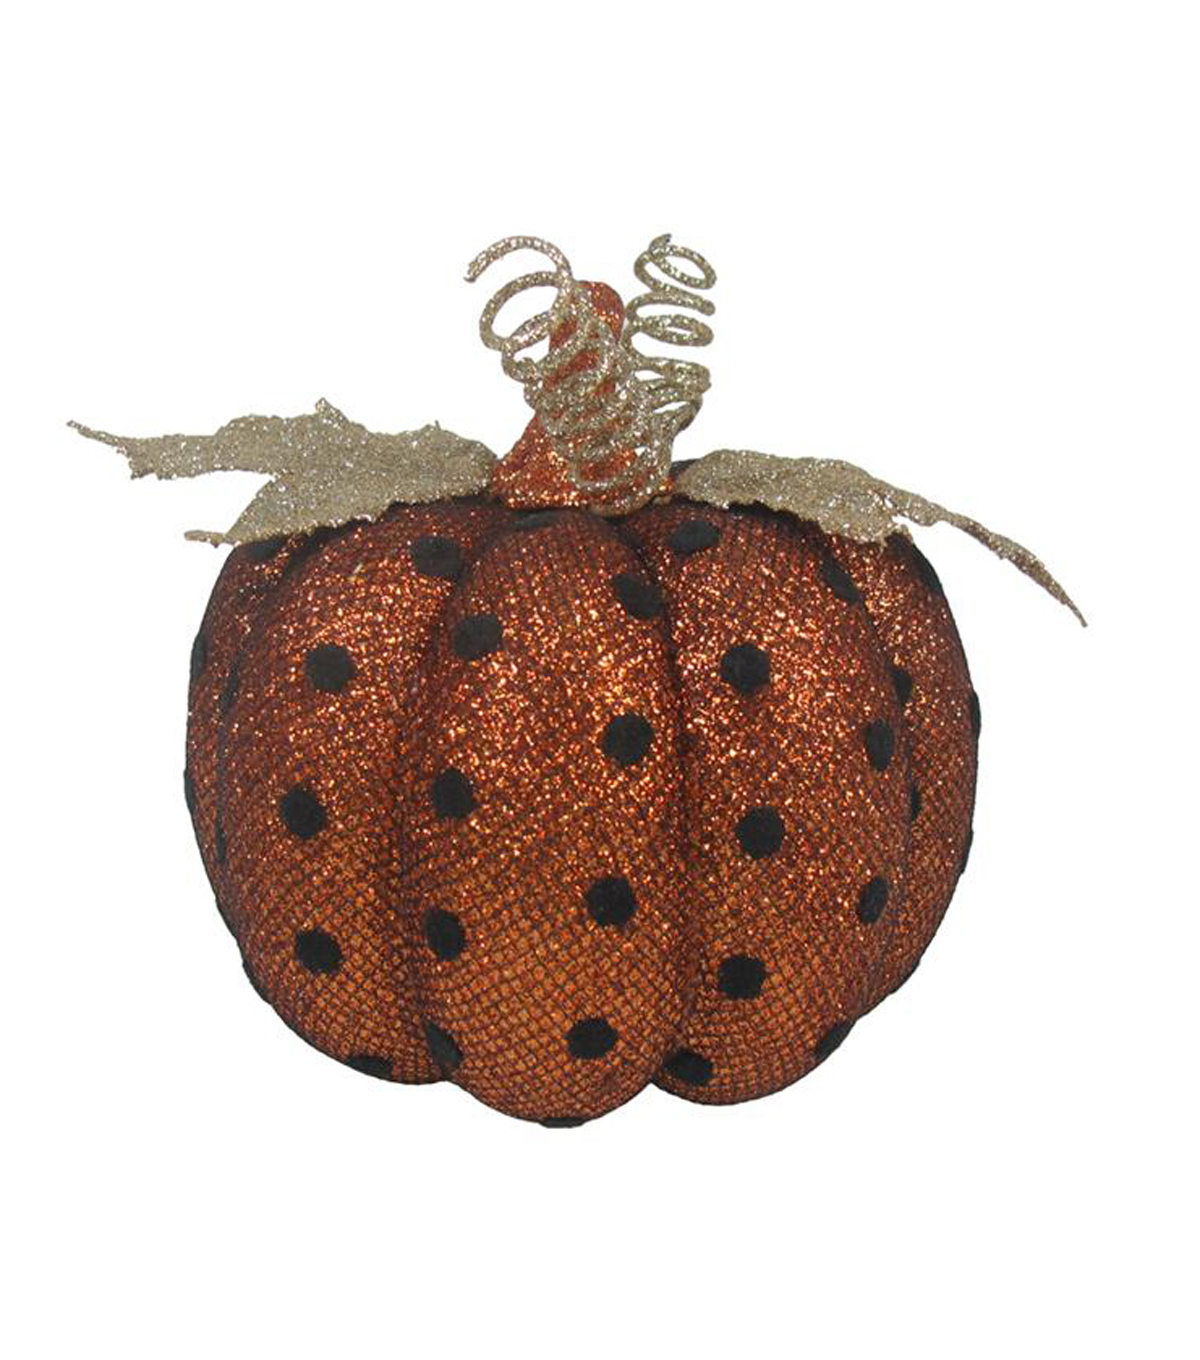 Pumpkin Boutique Extra Small Mesh Pumpkin-Black Polka Dots on Orange